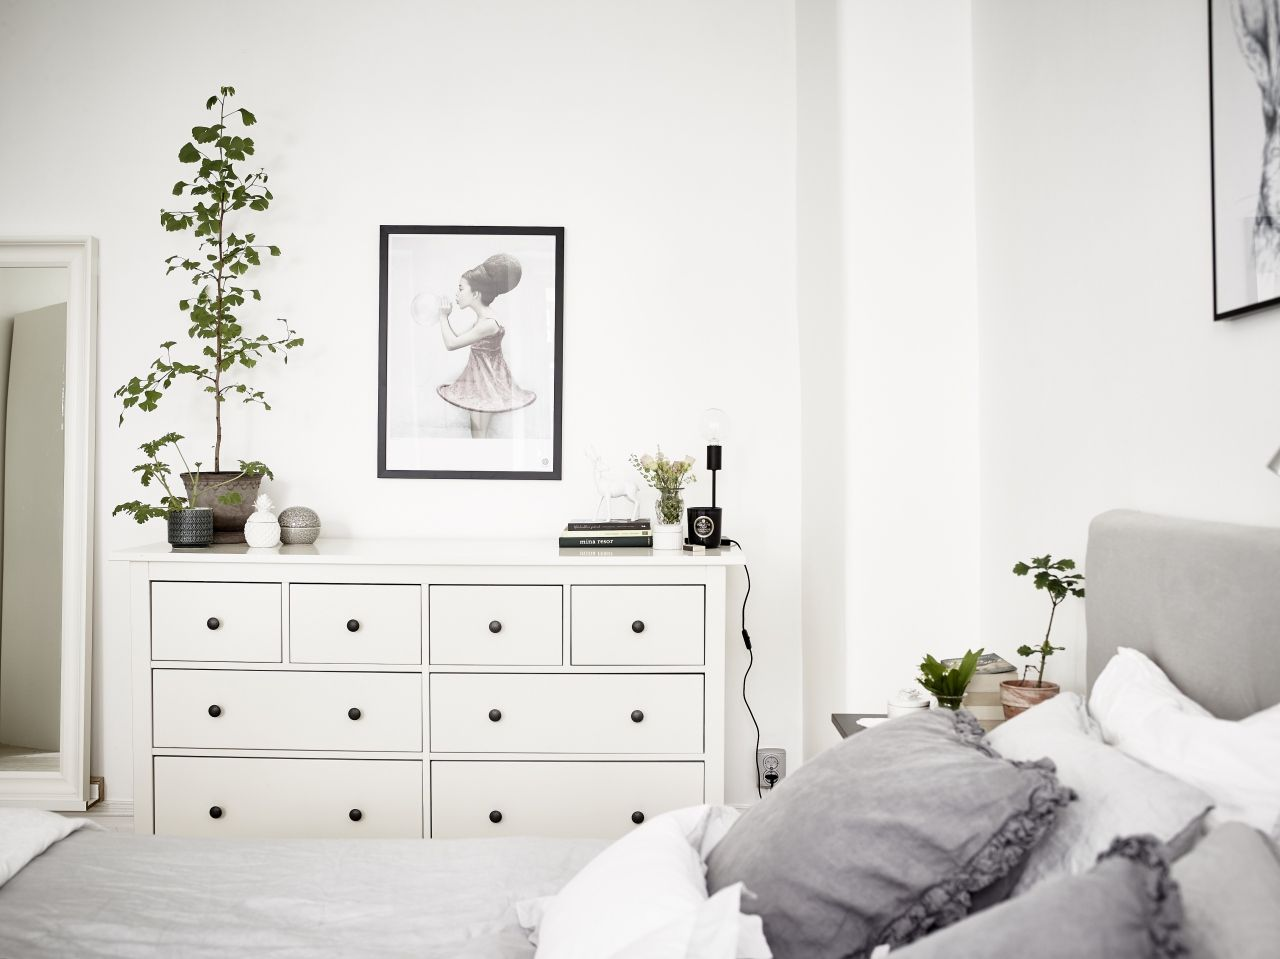 All white bedroom ikea - 12 Best Ikea Interior Design Finds White Bedroom